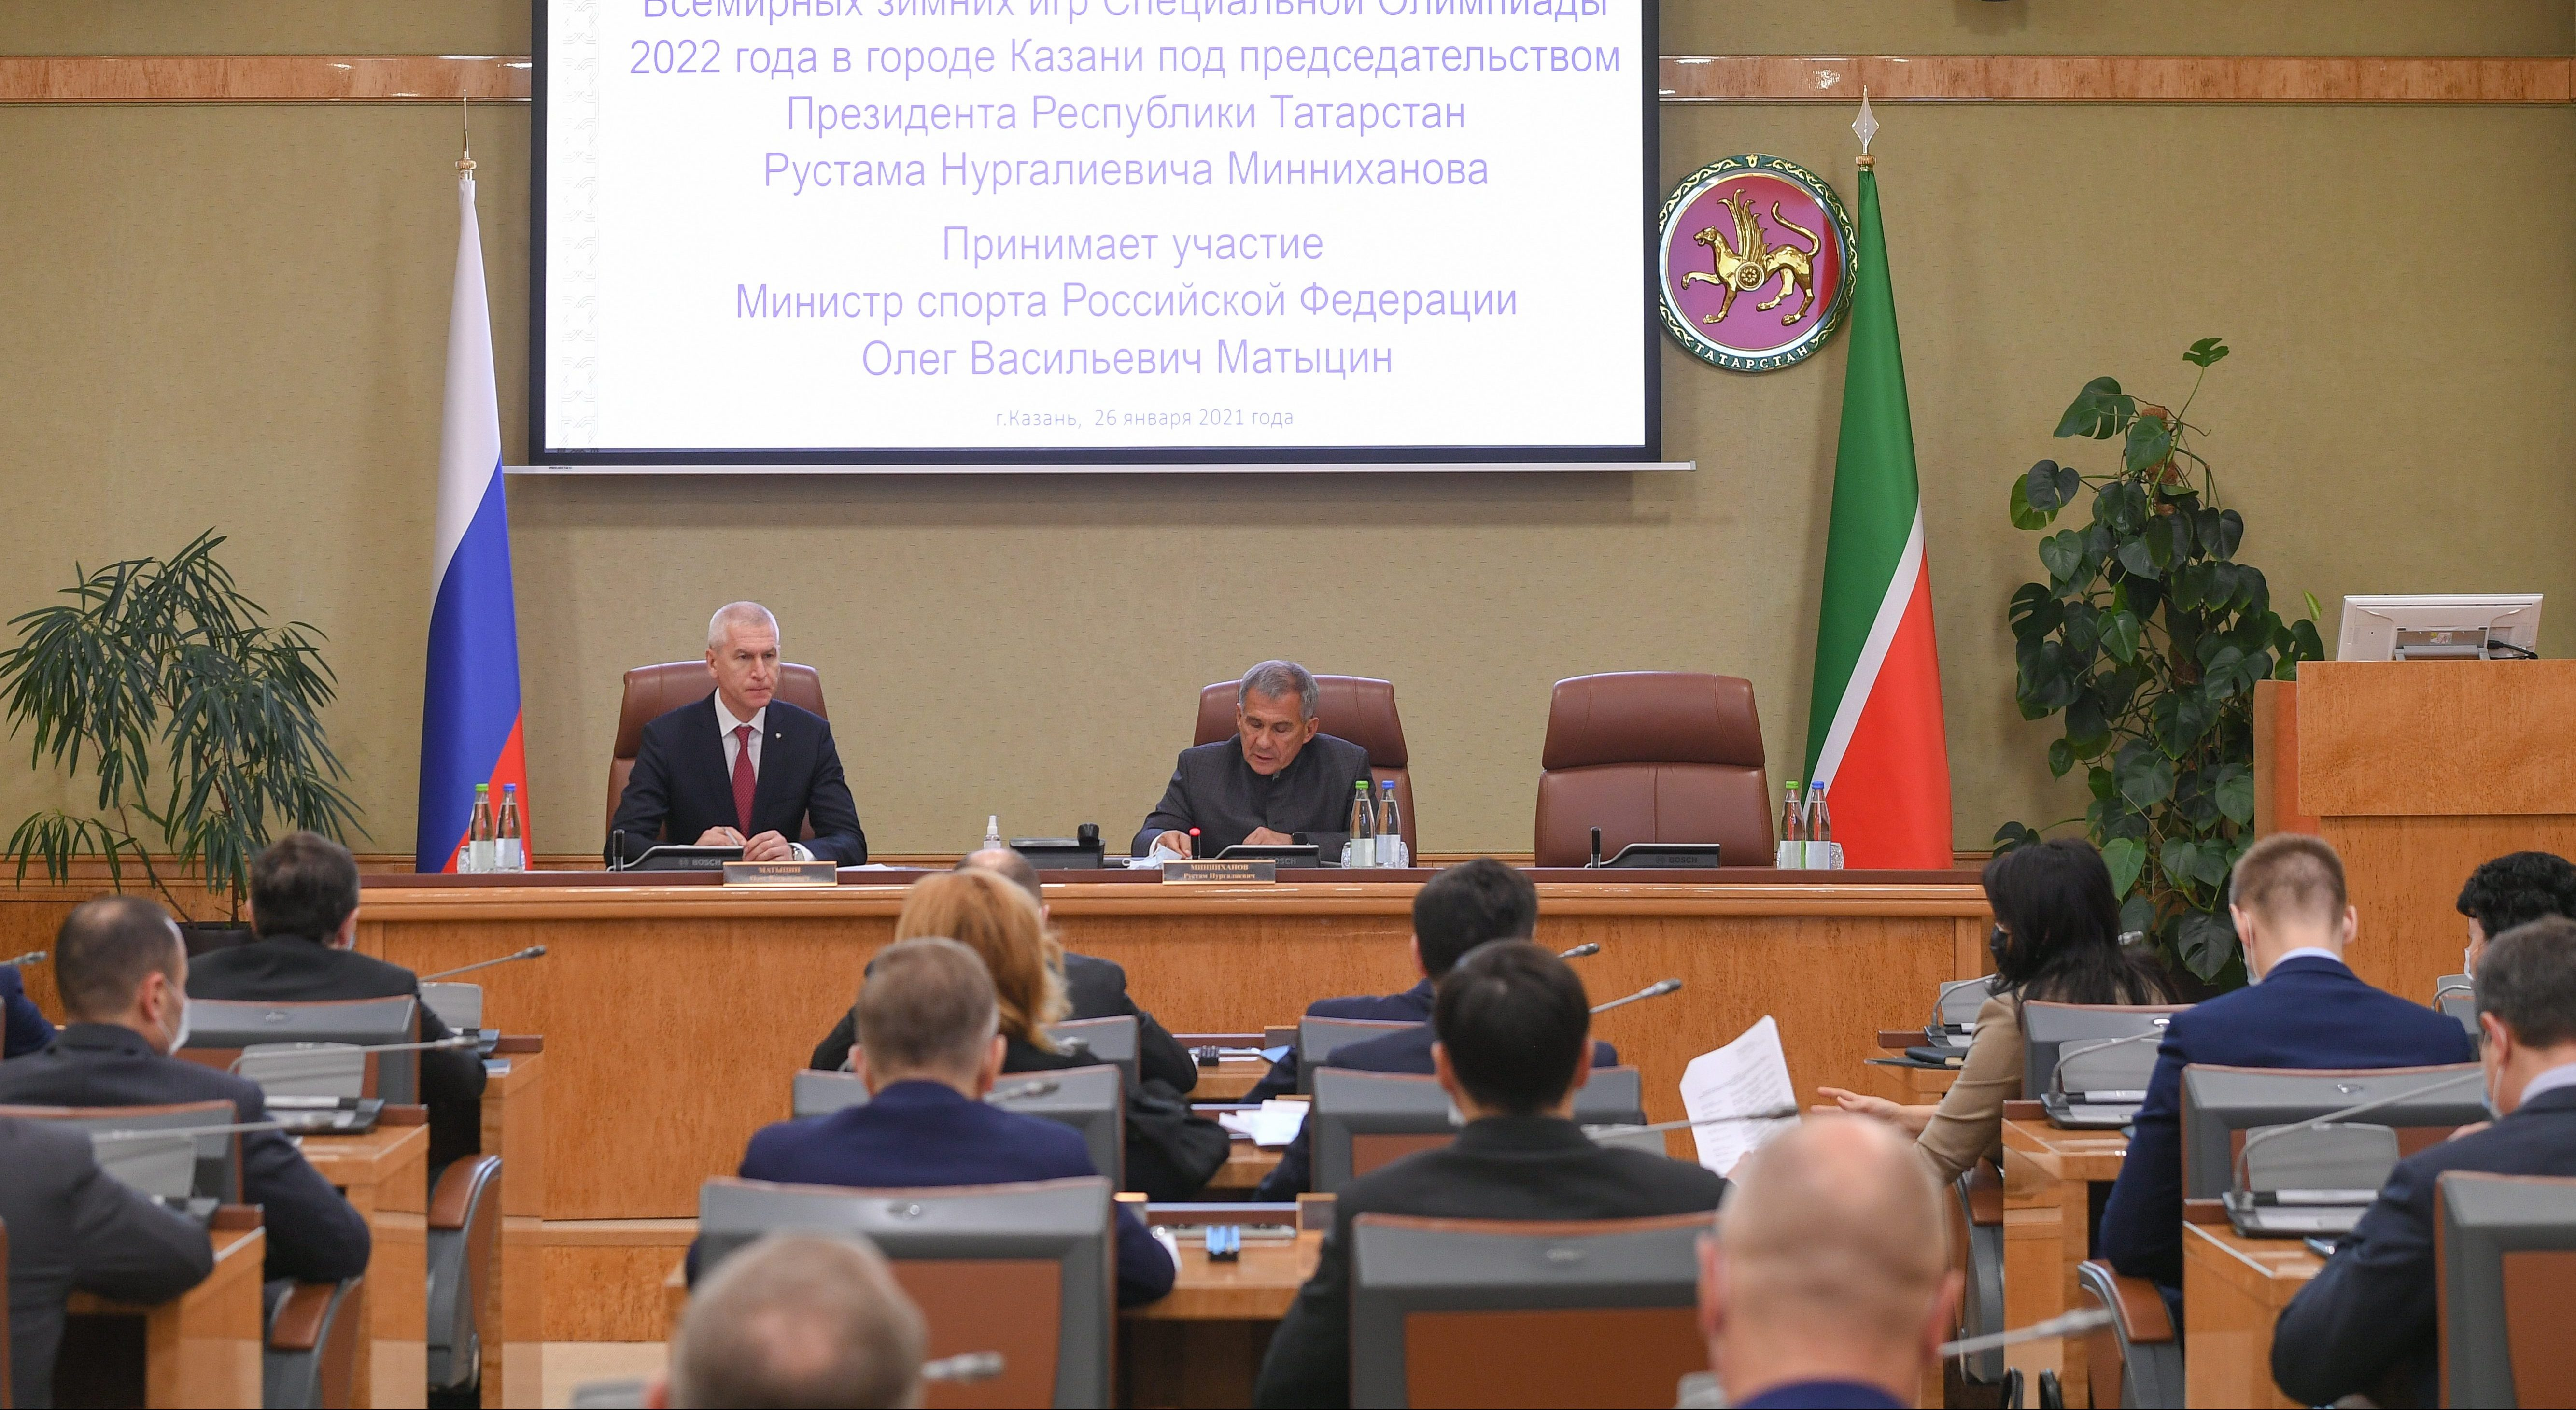 Rustam Minnikhanov conducts Meeting of Republican Committee for Special Olympics World Winter Games Kazan 2022